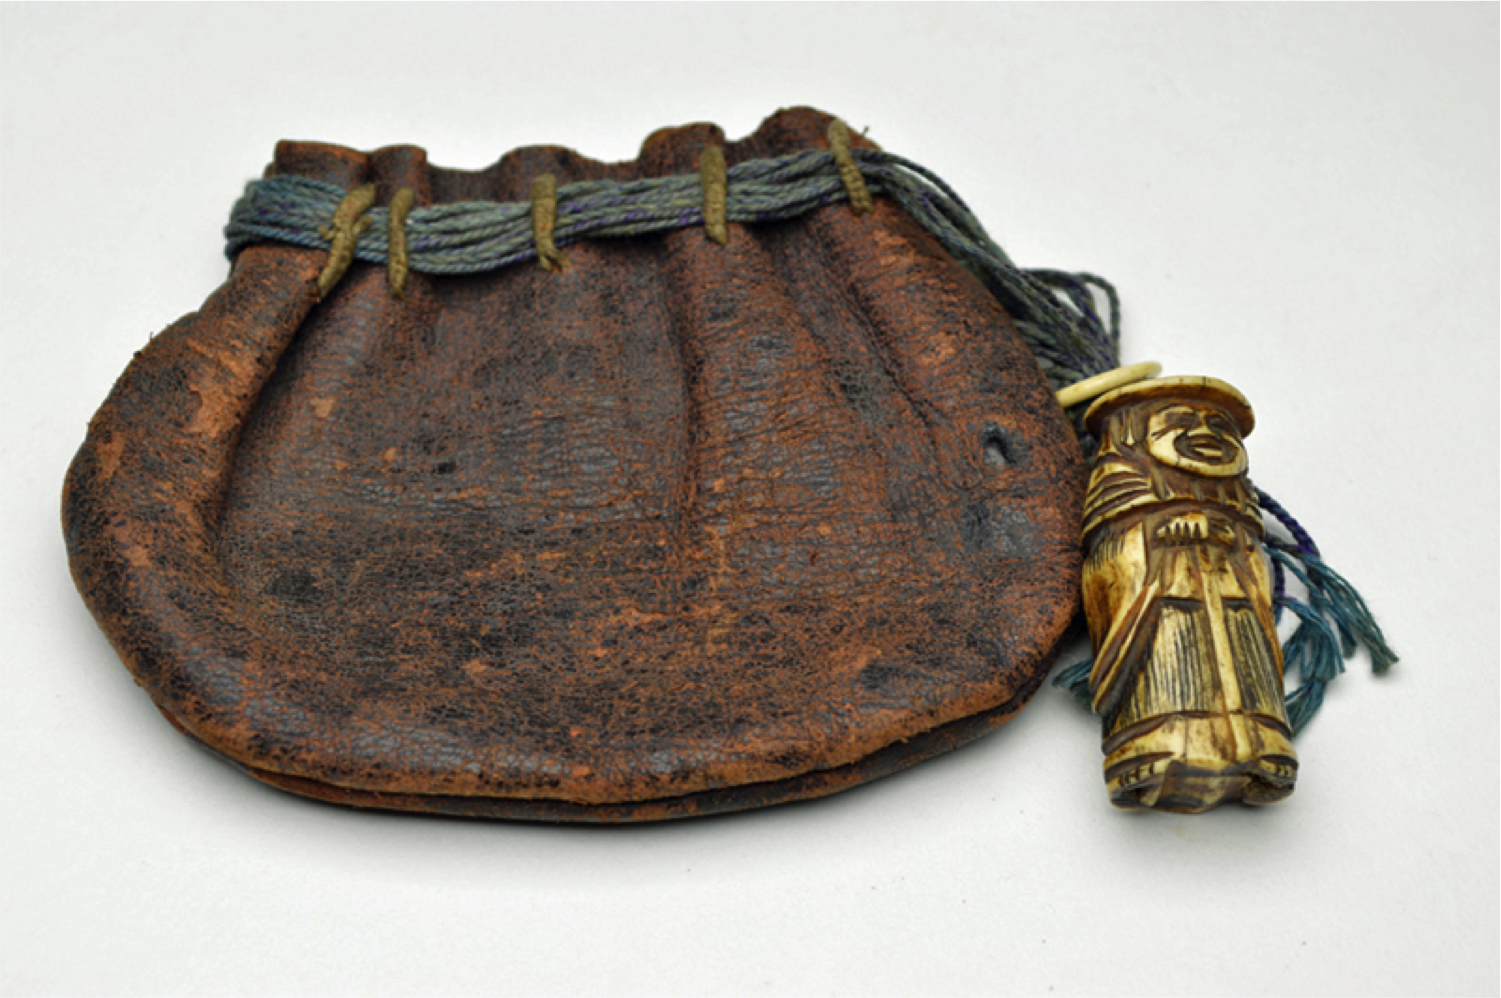 Benkei's Weapons Pouch